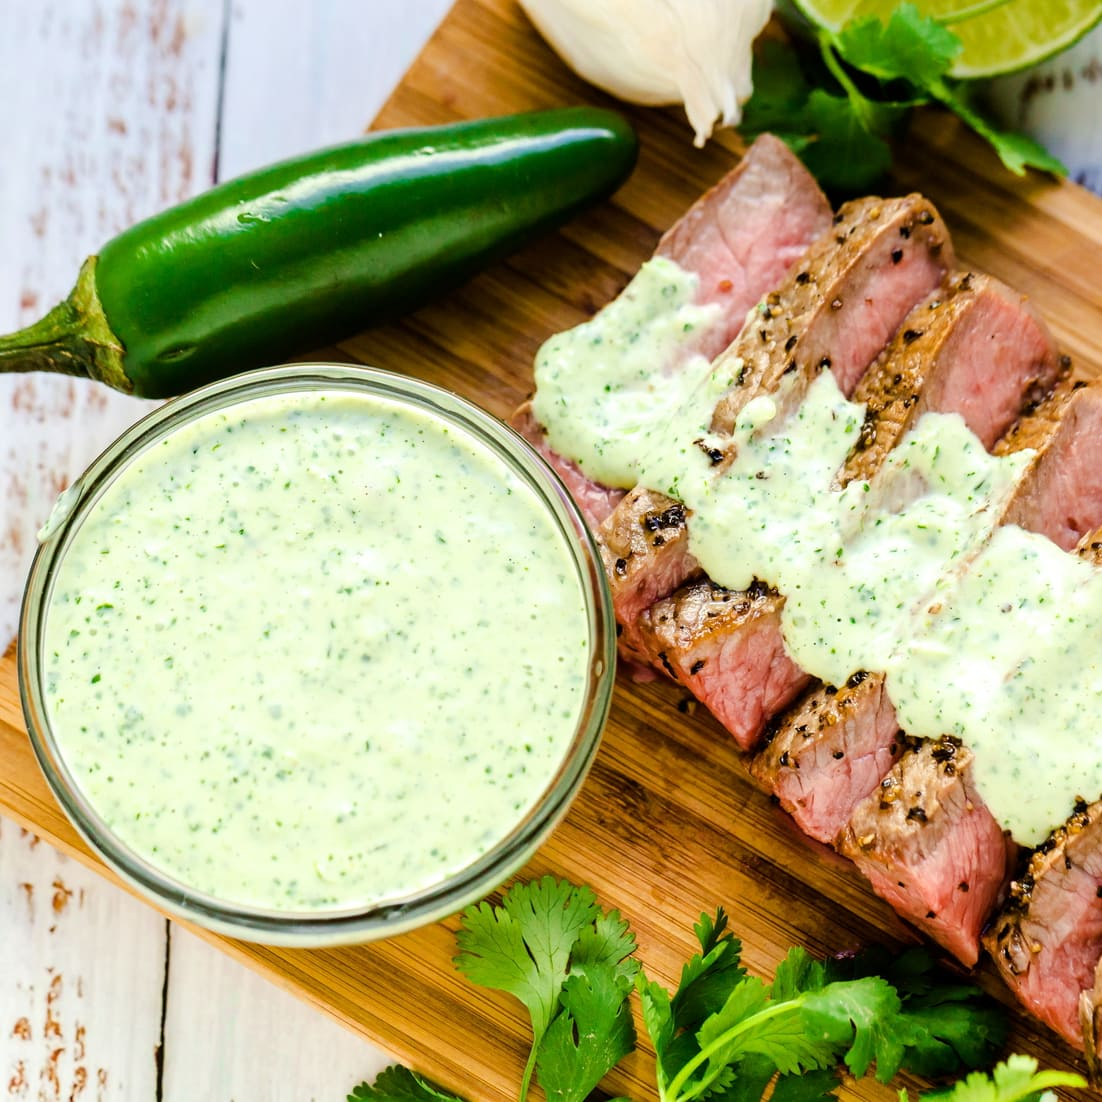 The green sauce drizzled over New York steak